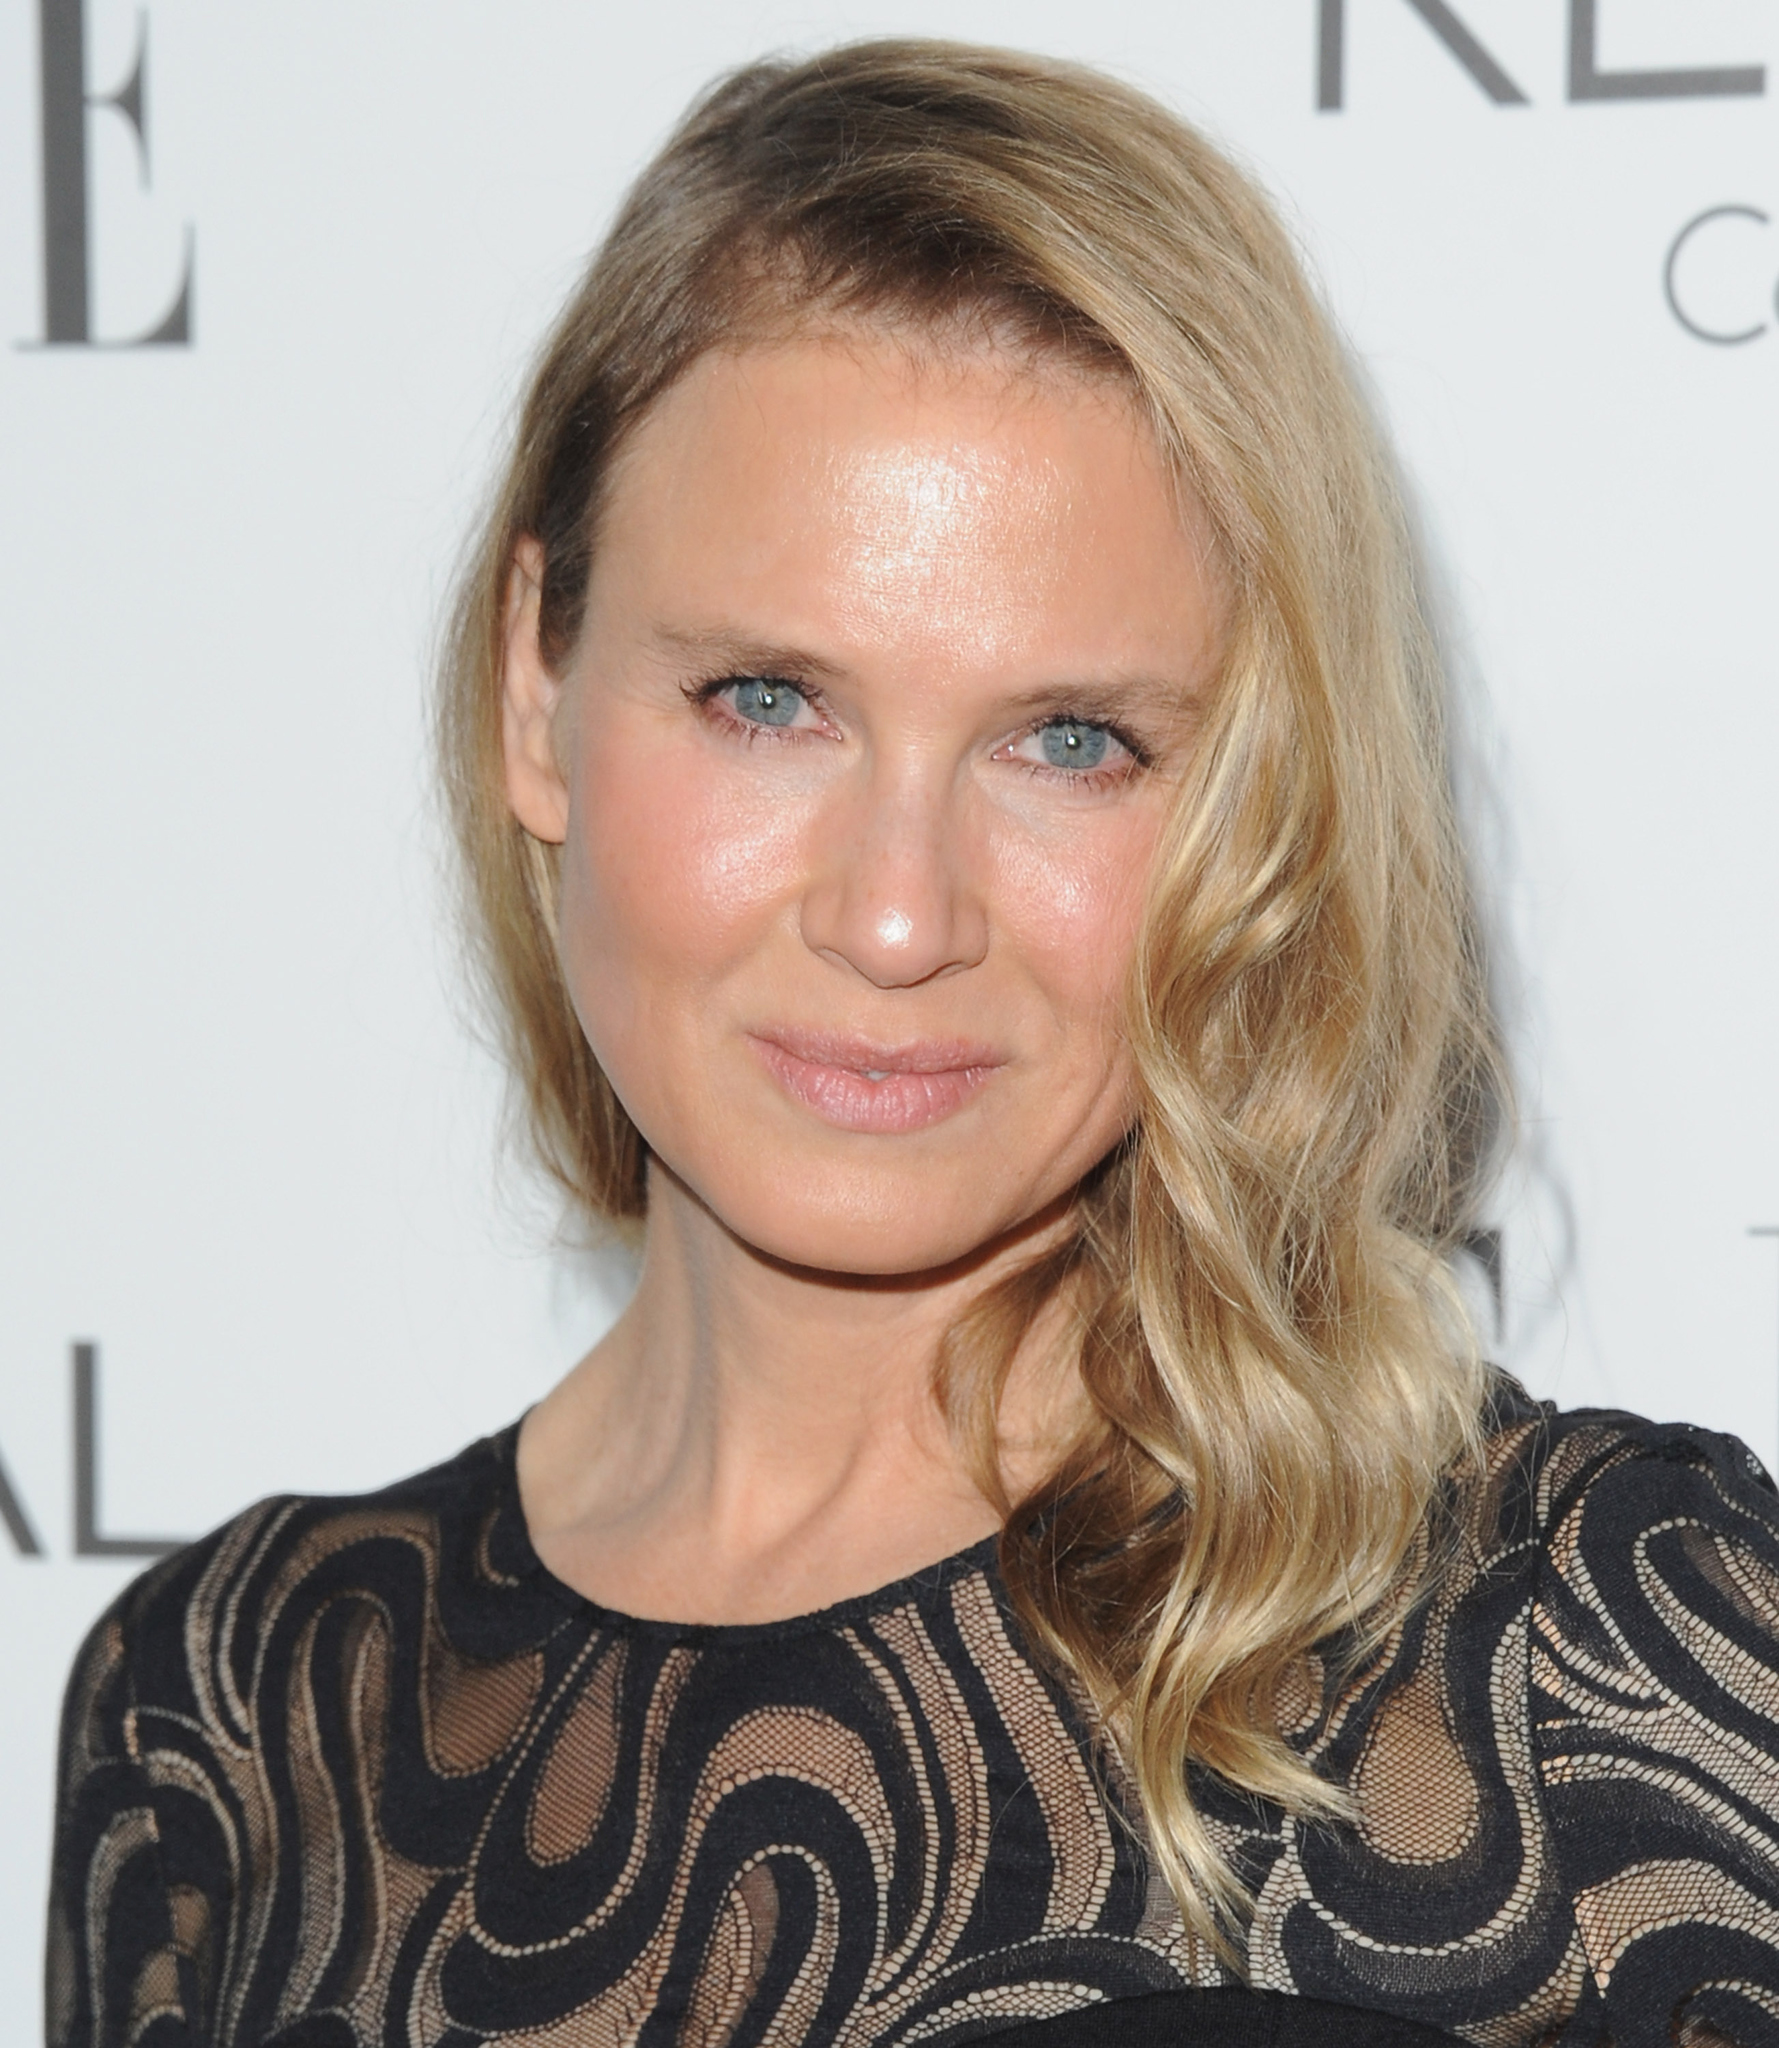 unrecognizable famous people renee zellweger after